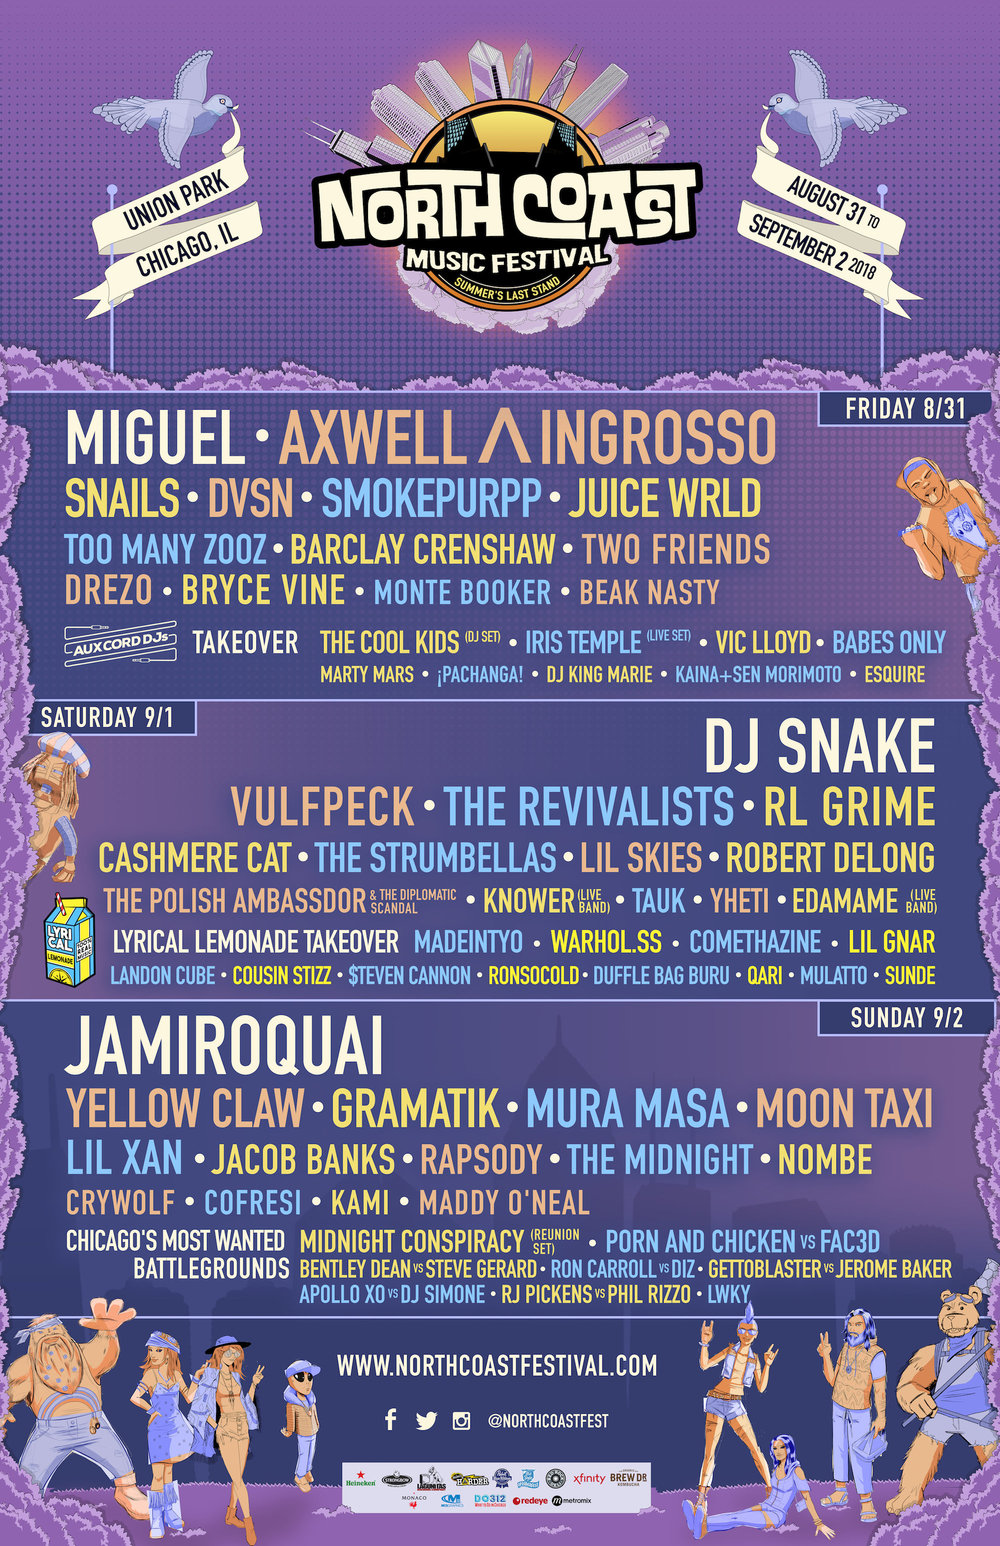 Flash ticket giveaway! North Coast Music Festival (Aug. 31- Sept. 2) - Huge Opportunity ( GA ticket with a +1. Click lineup photo for details on entry!)